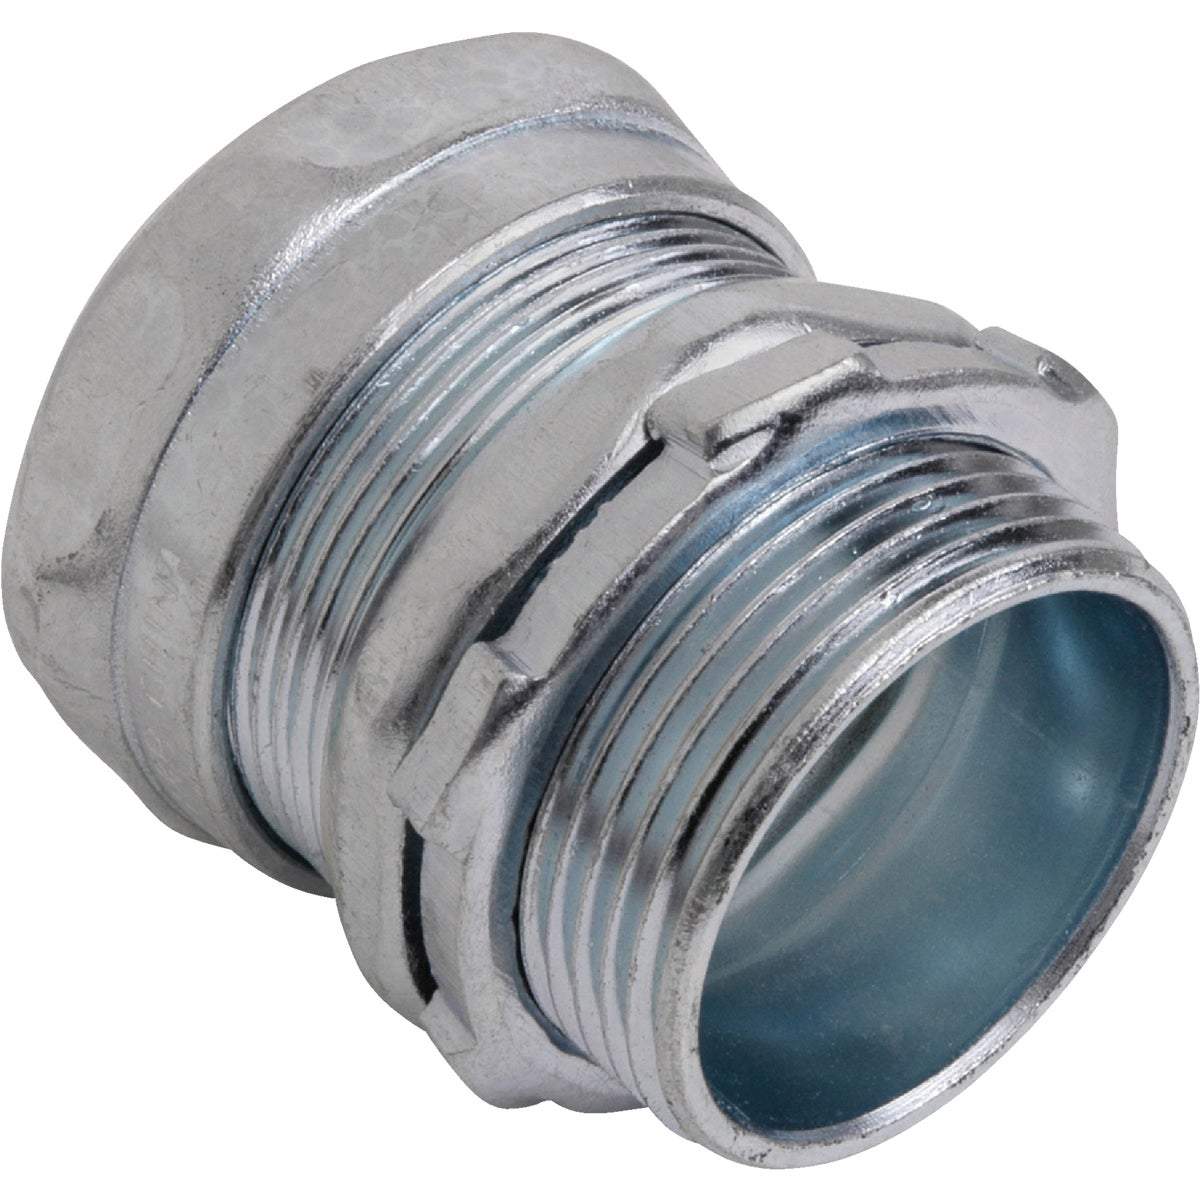 "1-1/4"" EMT CONNECTOR - TC114SC1 by Thomas & Betts"